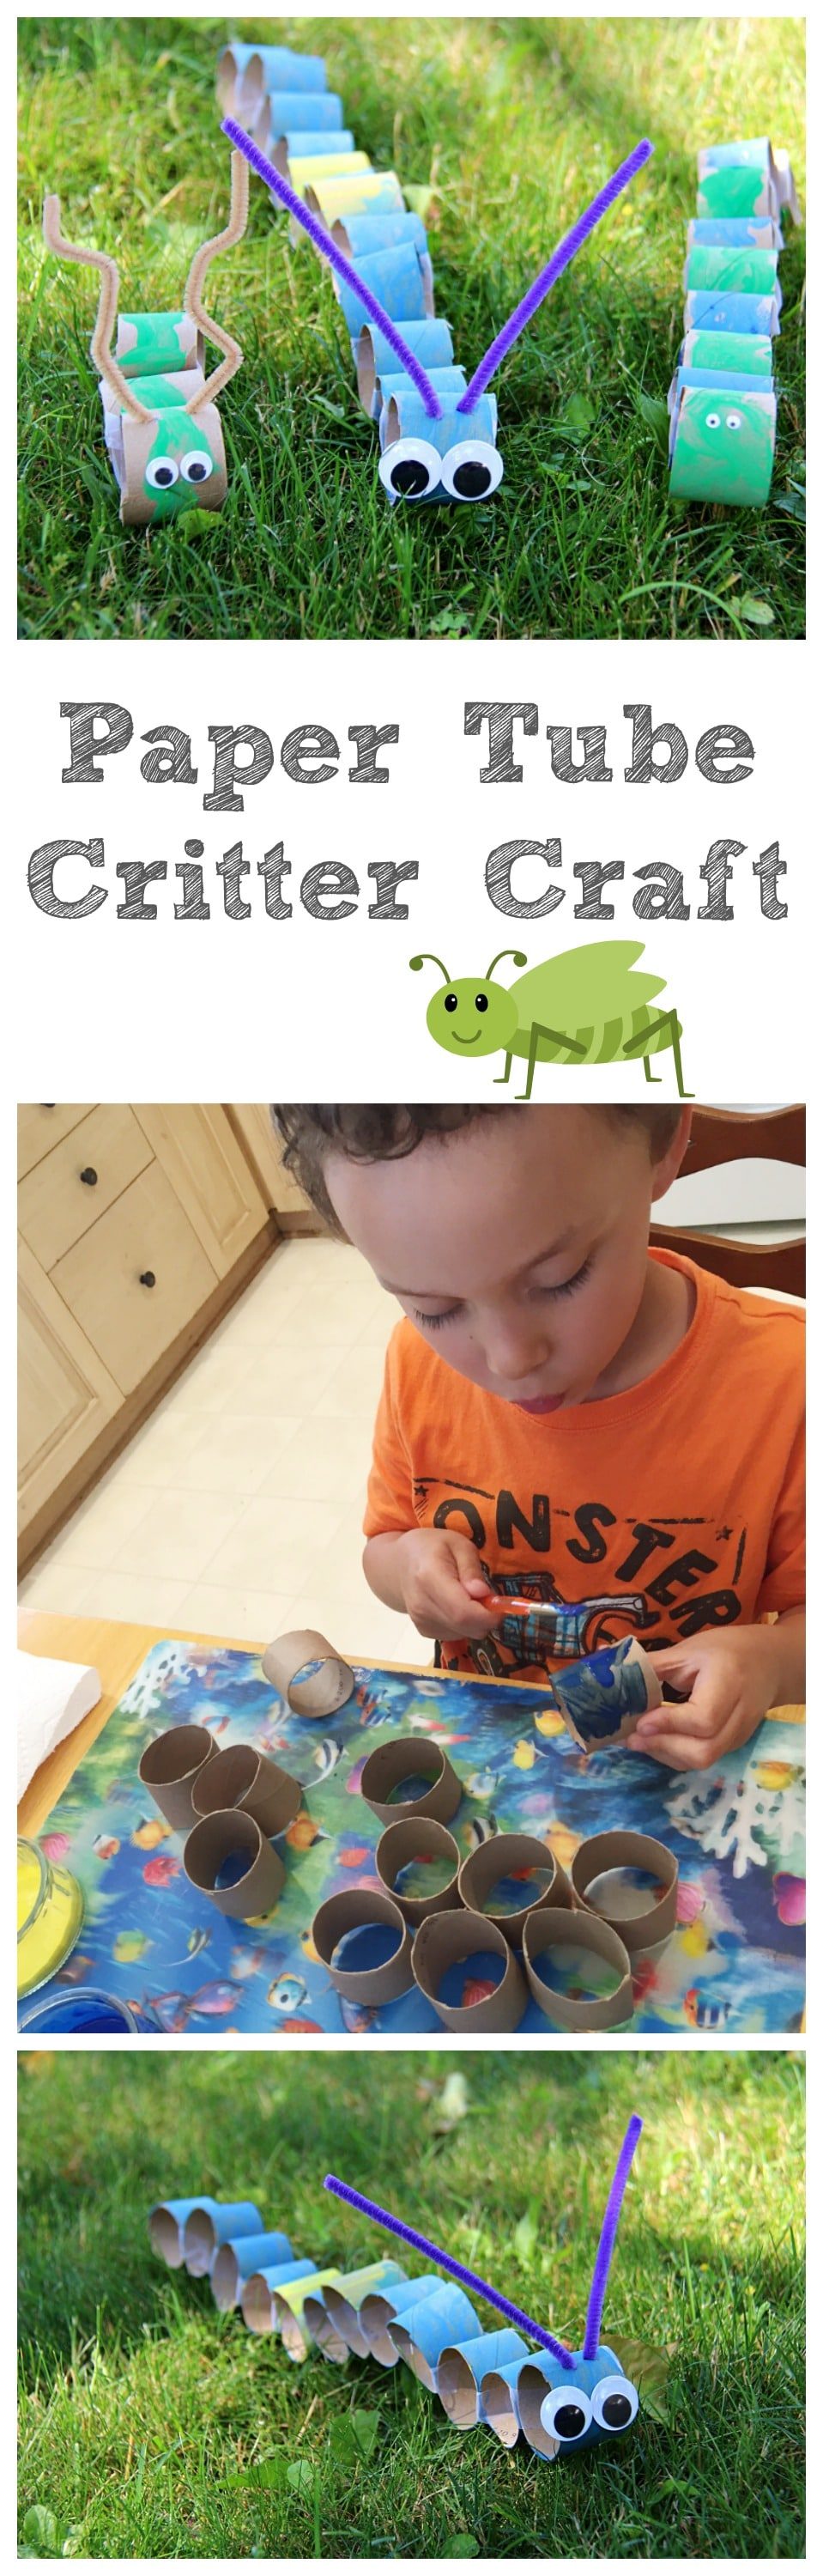 Paper Tube Critter Craft Collage